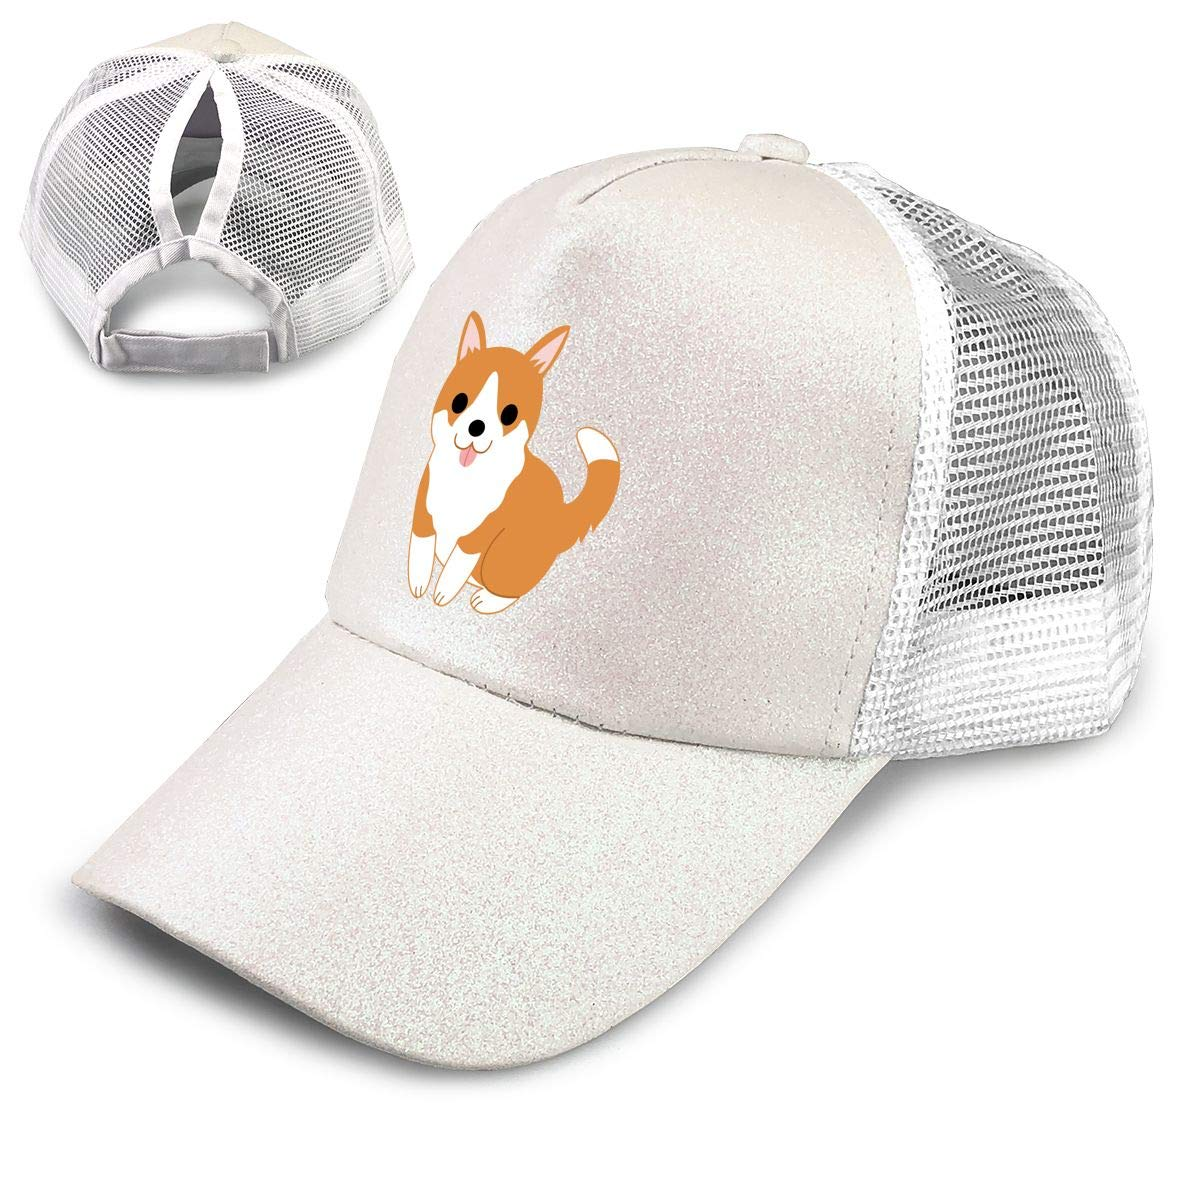 Cute Puppy Ponytail Messy High Bun Hat Ponycaps Baseball Cap Adjustable Trucker Cap Mesh Cap